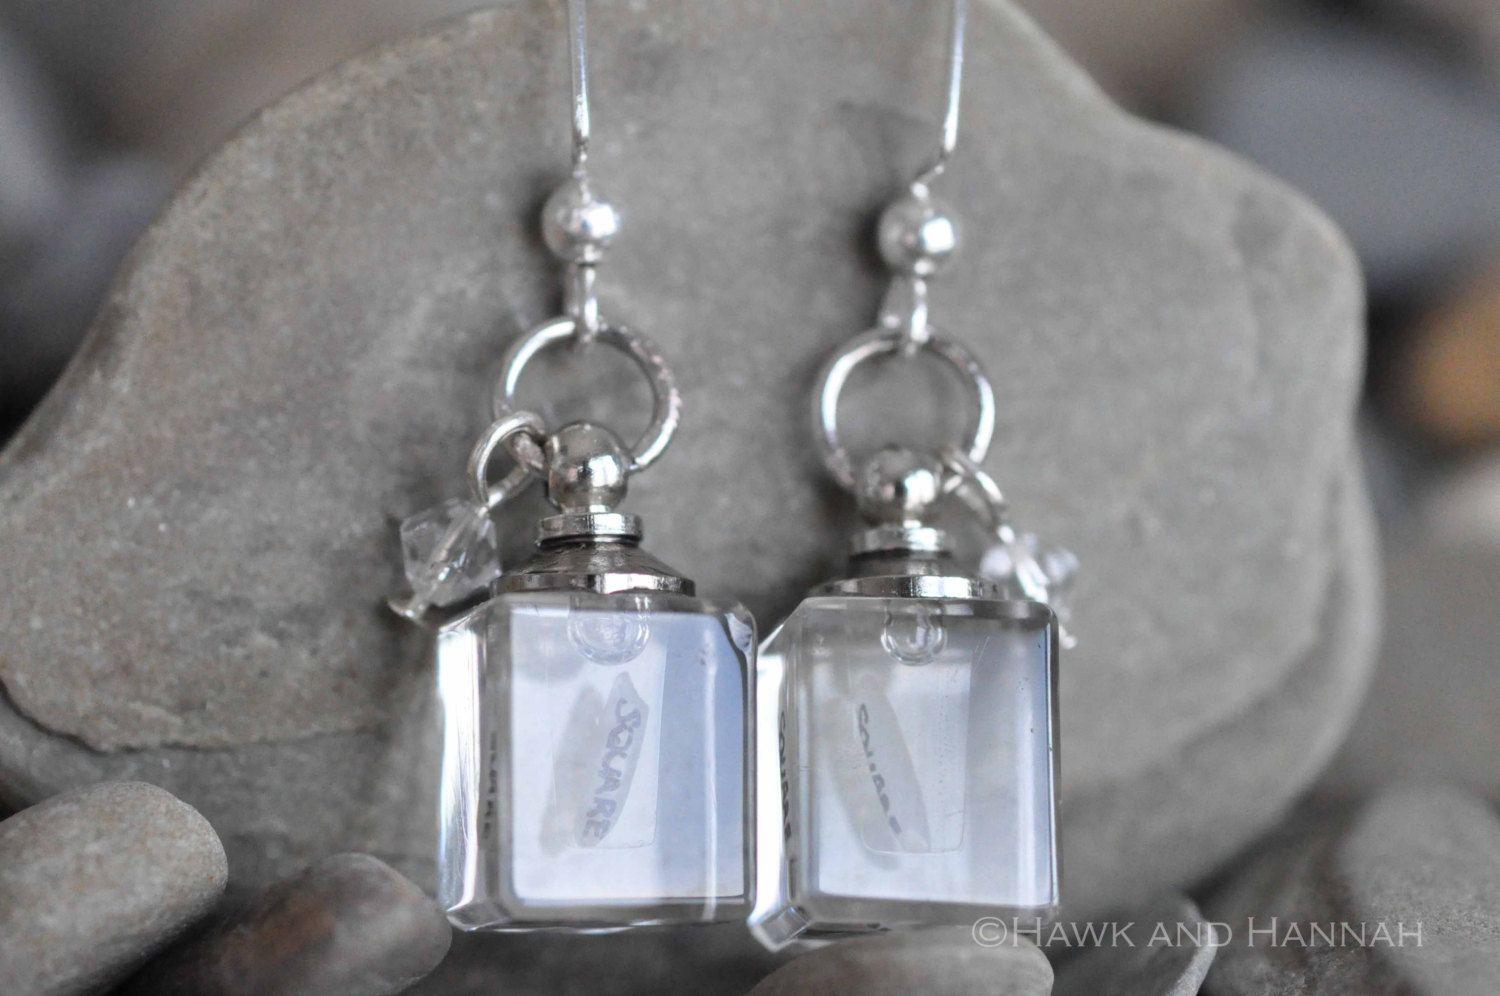 Crystal Hook Earrings with Personalized Hand-Lettered Rice Grains, by Hawk and Hannah. via Etsy.